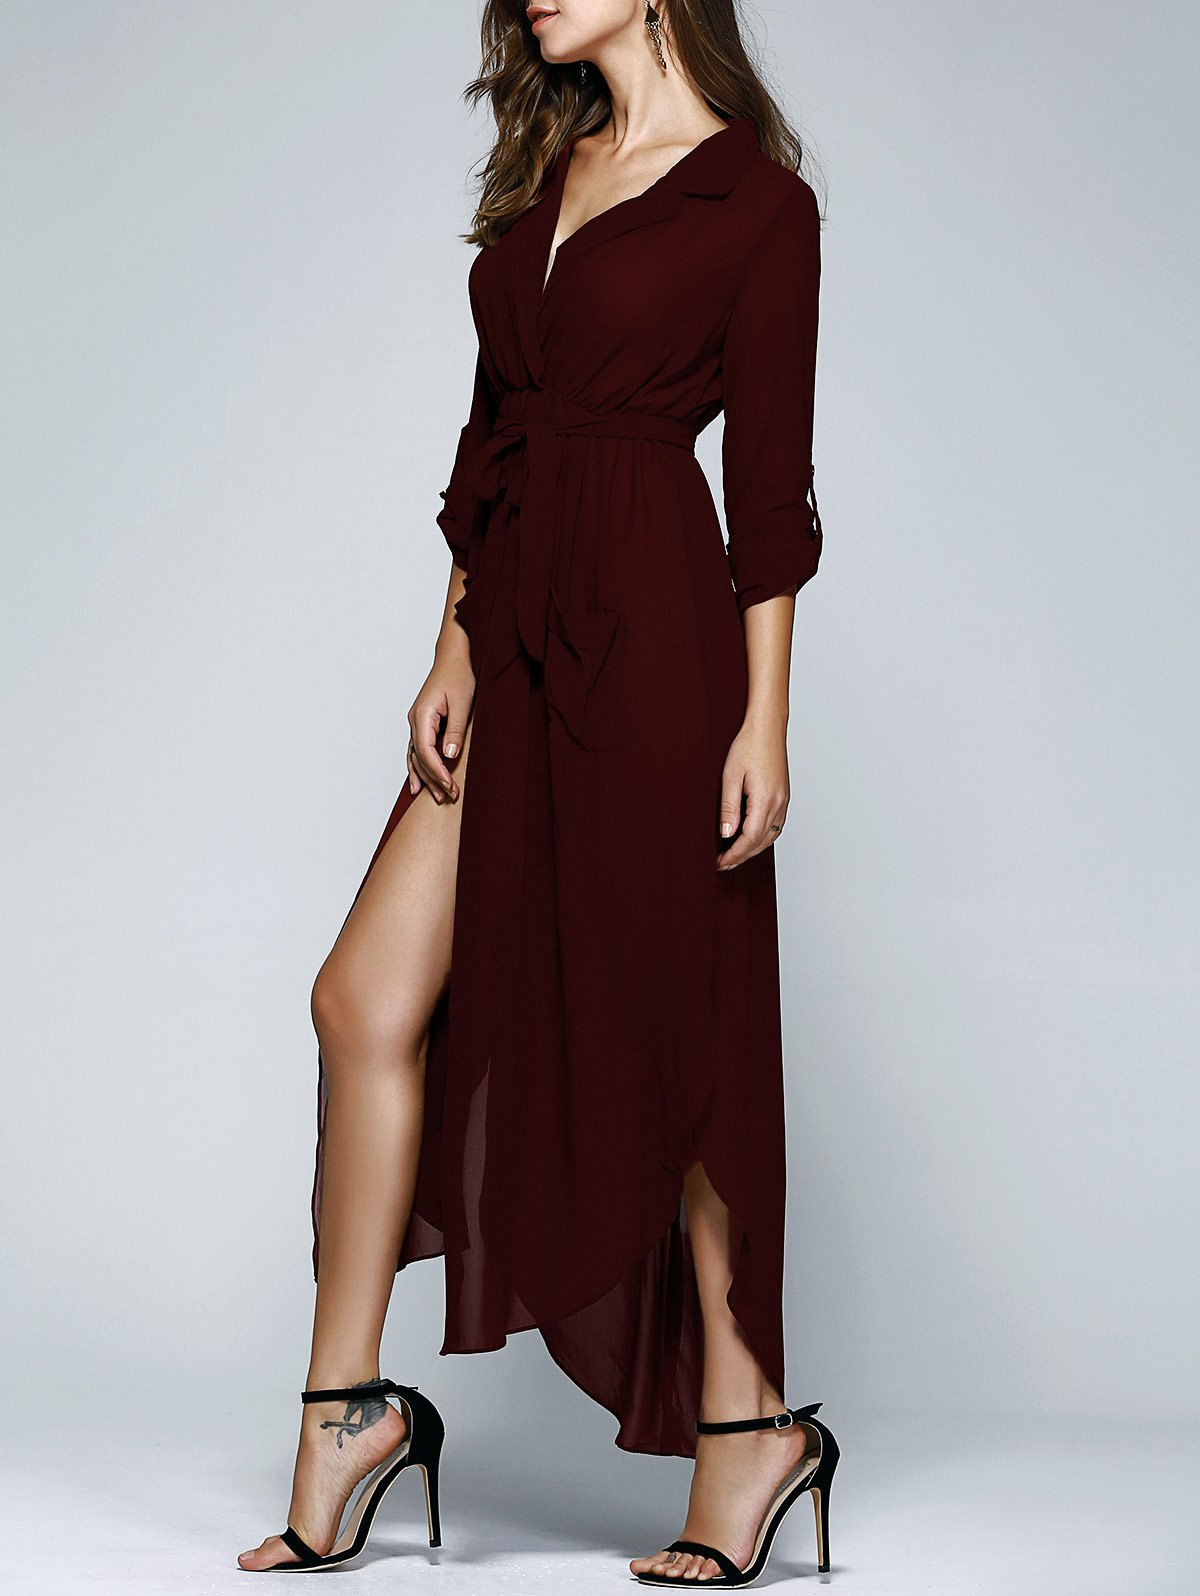 Lapel Collar Long Sleeve Solid Color Pockets Belted Dress